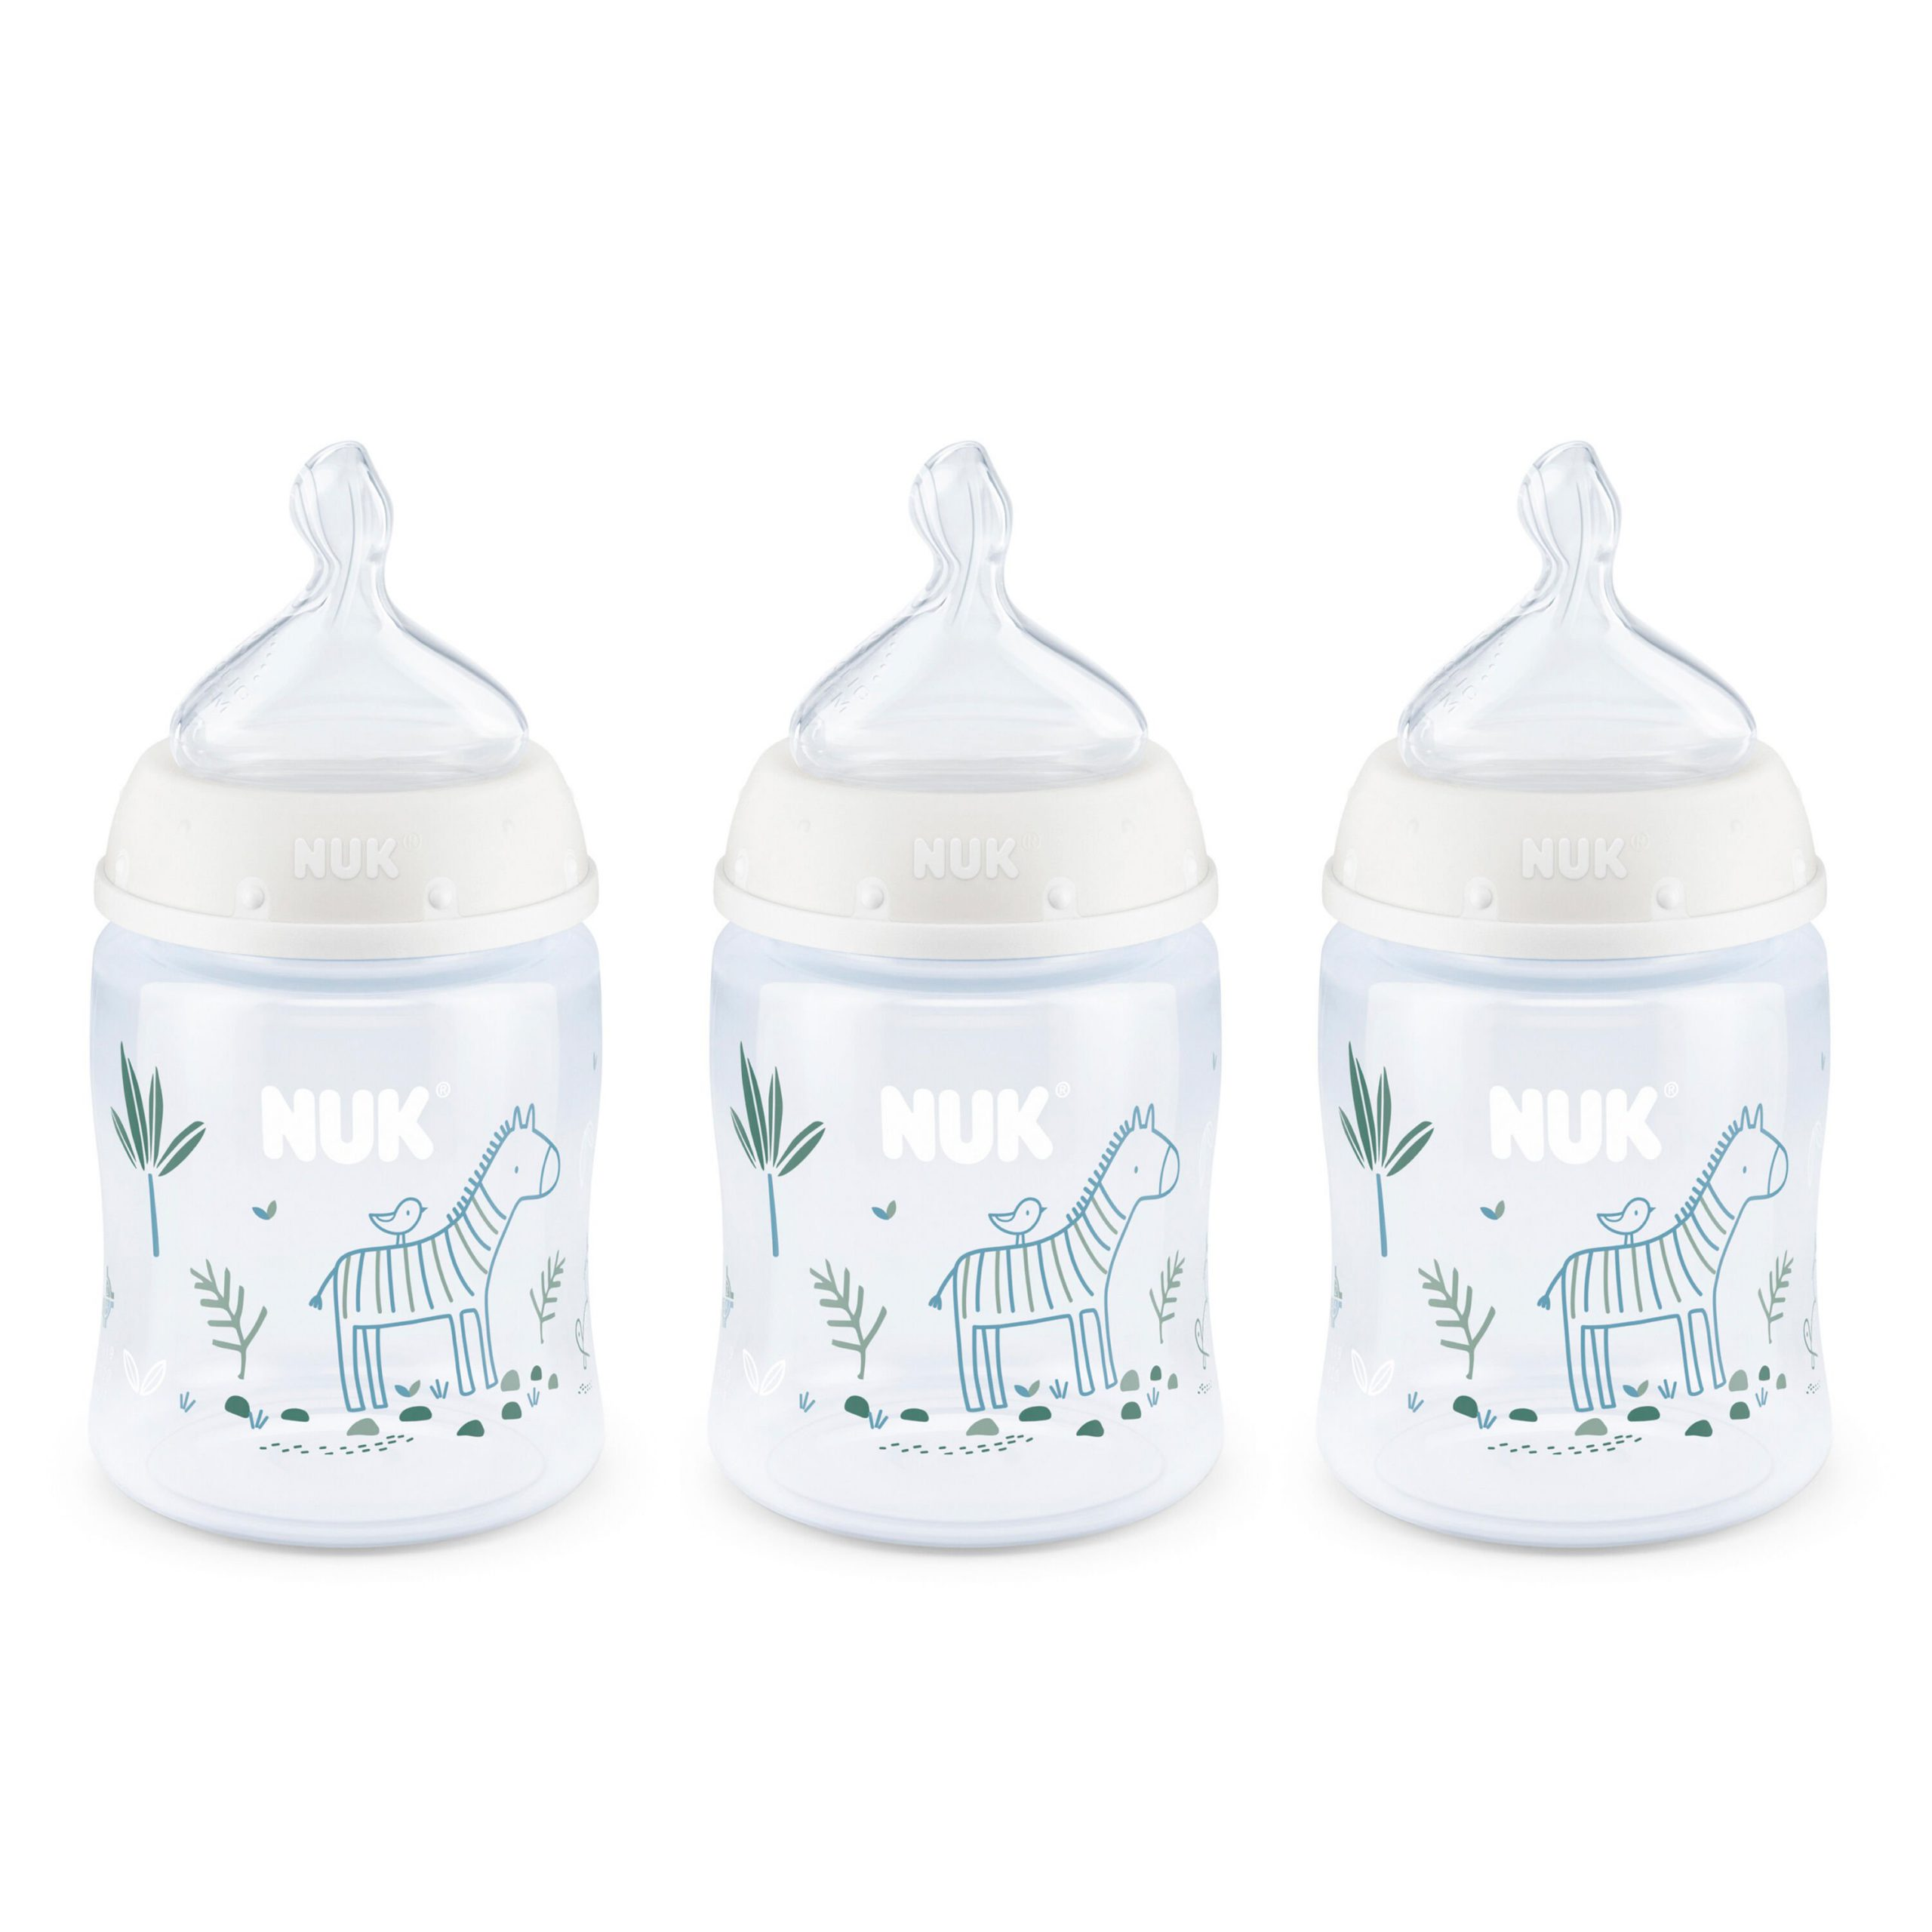 NUK® Smooth Flow™ Anti-Colic Bottle, 5 oz, 3-Pack, Zebra Product Image 1 of 9